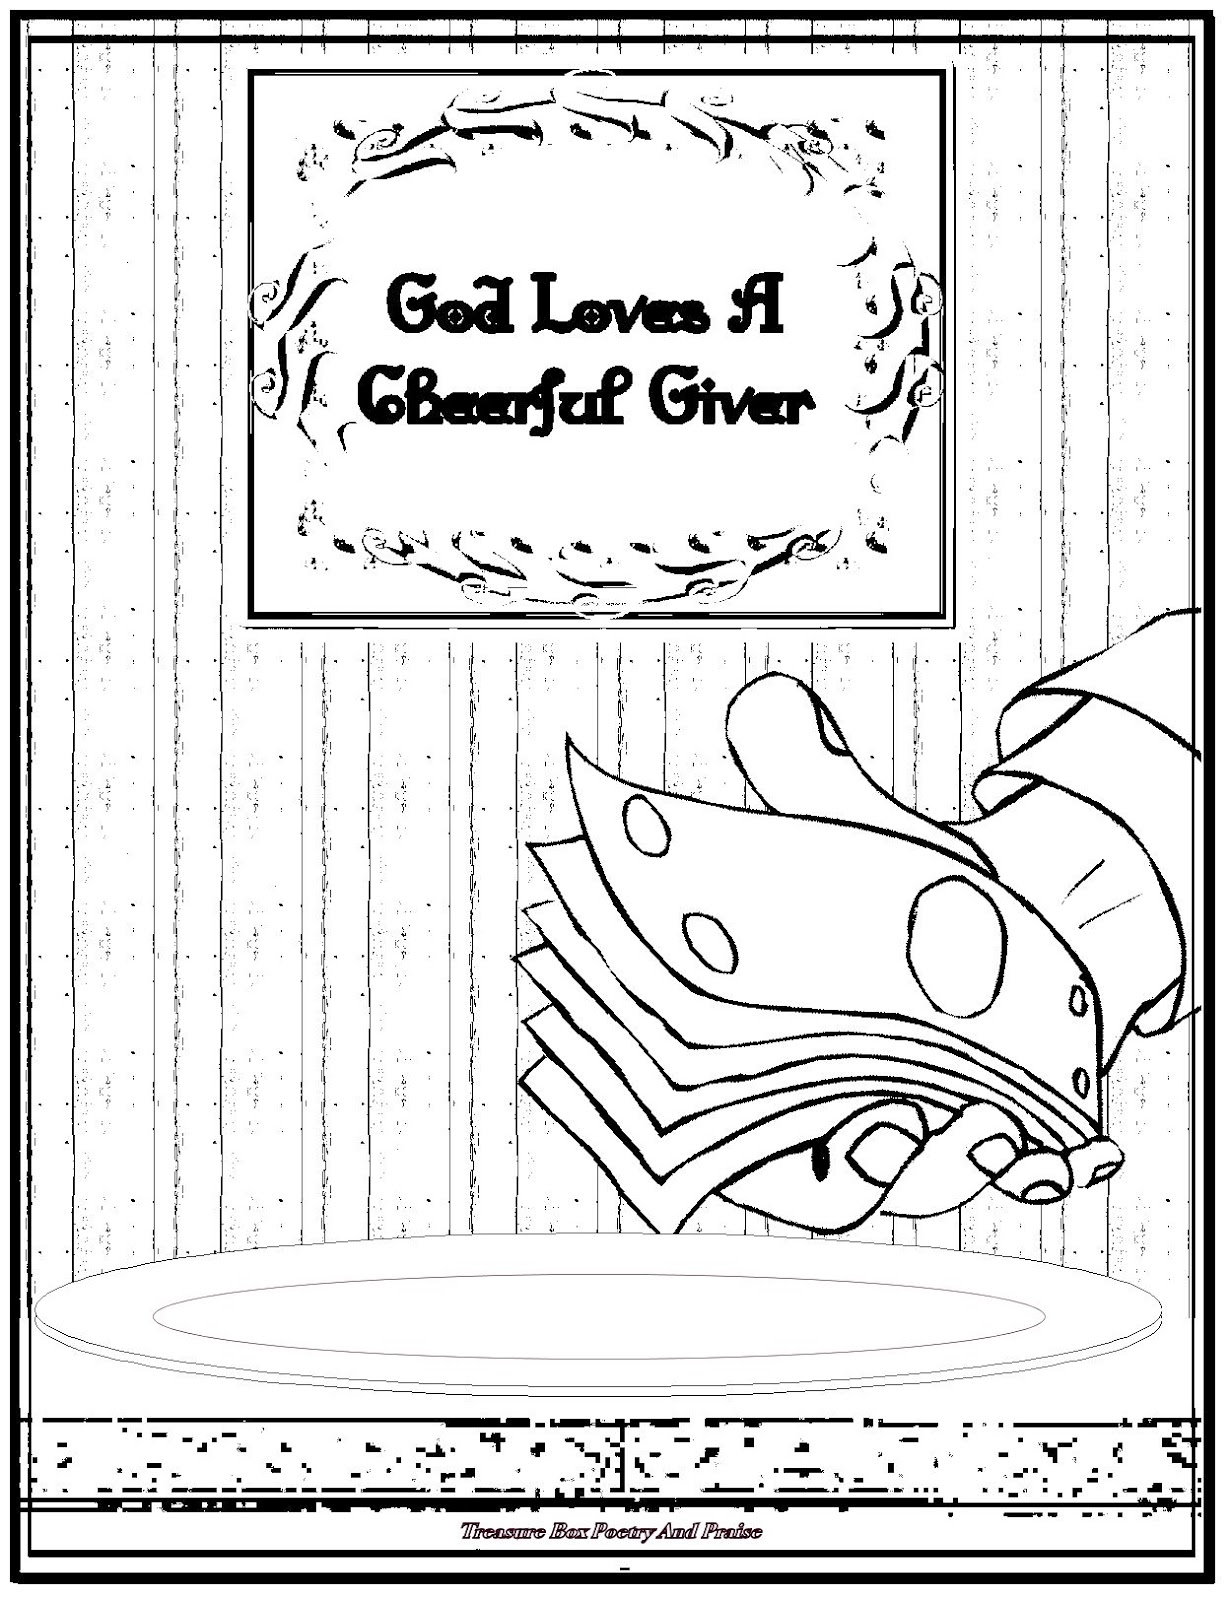 God Loves A Cheerful Giver - Coloring Sheet - Restored ...